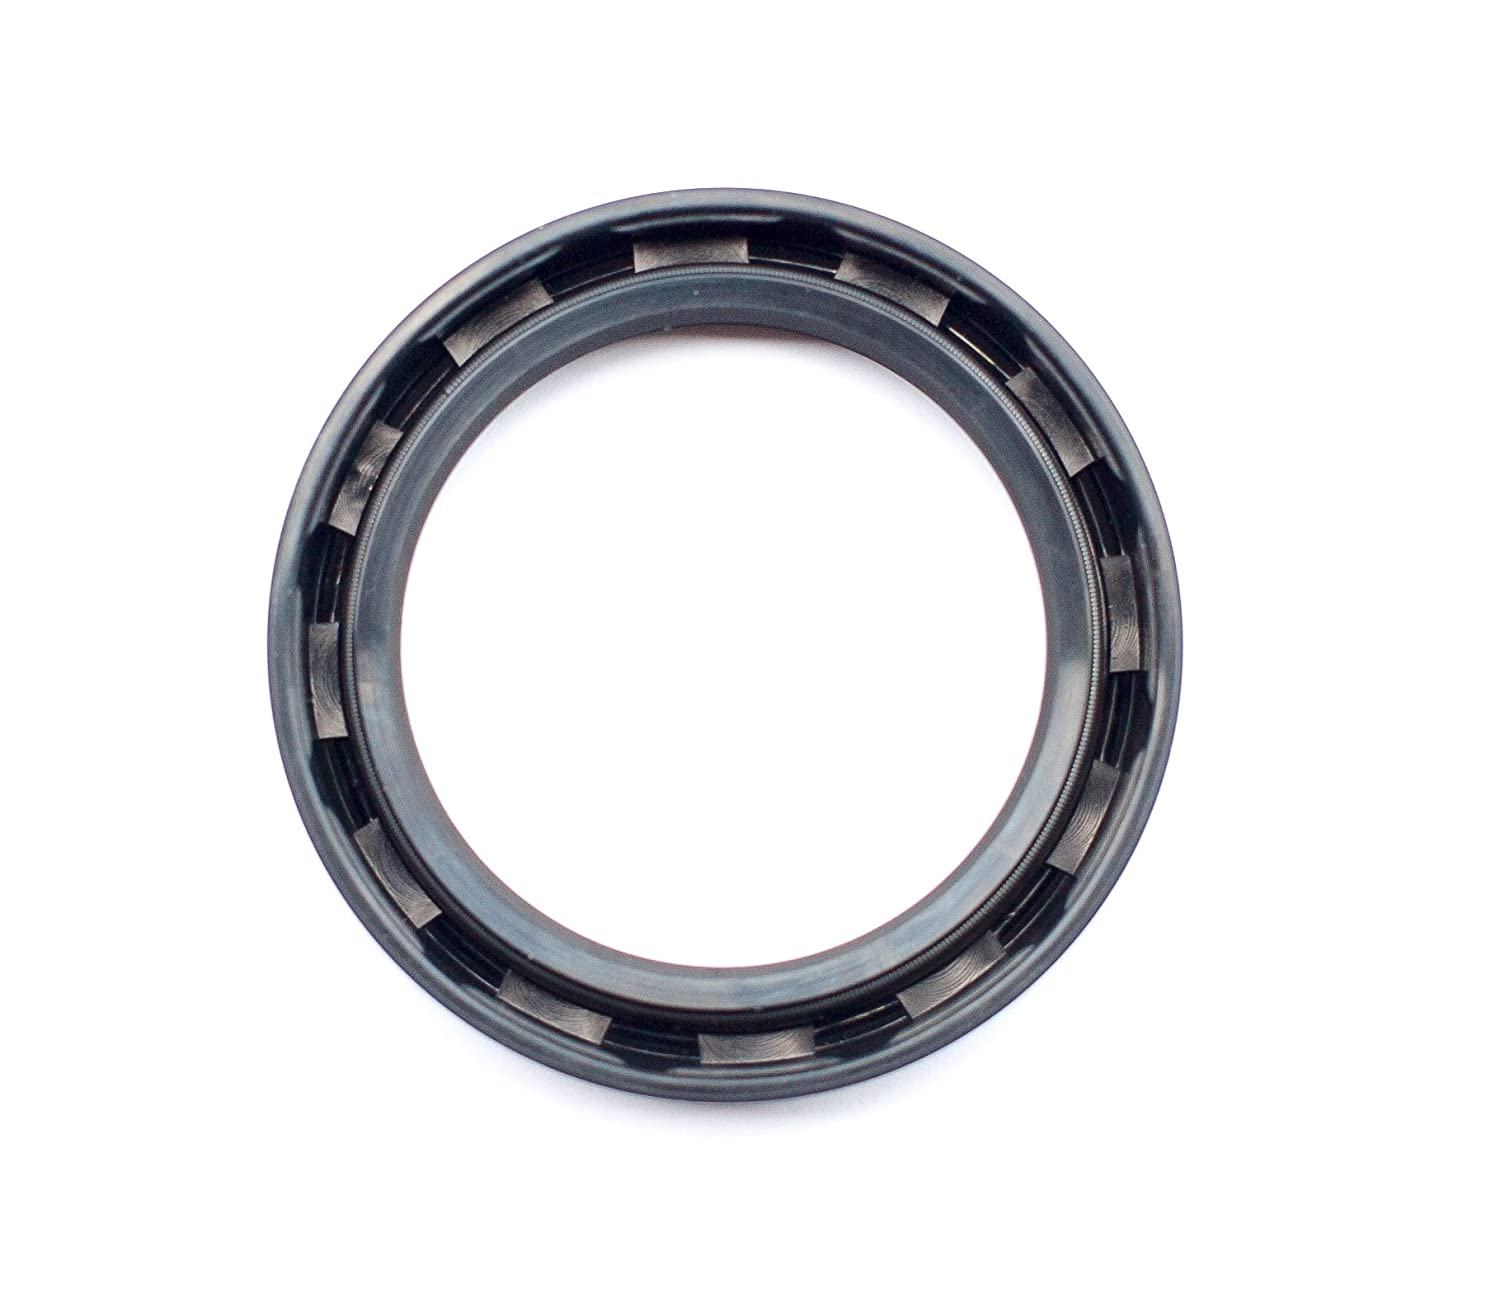 Oil Seal 45X62X10 Oil Seal Grease Seal TC |EAI Double Lip w//Garter Spring 1.772x2.441x0.394 Single Metal Case w//Nitrile Rubber Coating 45mmX62mmX10mm